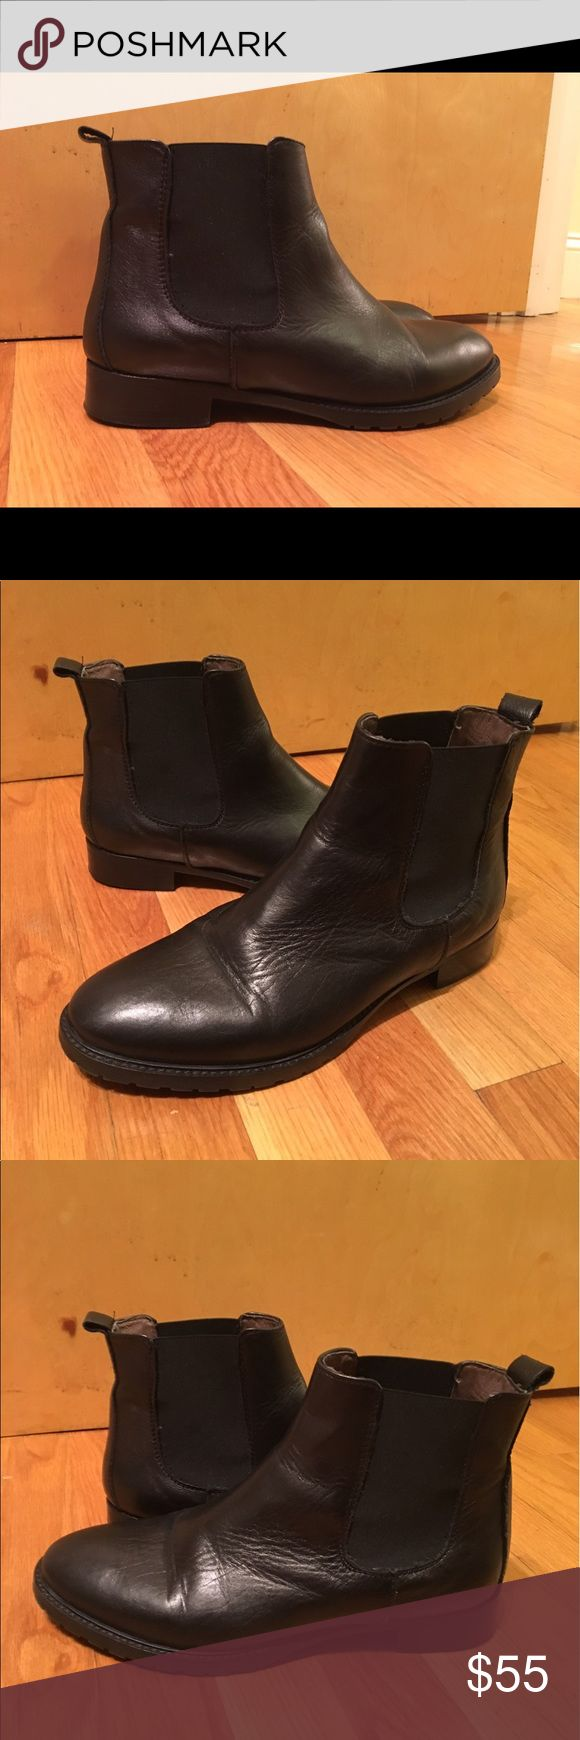 Black leather Chelsea boots size 39 Bought these in Rome, only worn twice, great condition! Technically a euro size 39 which should be a 9, but I wear an 8.5 and they fit me pretty snugly. casuccio & scalera Shoes Ankle Boots & Booties